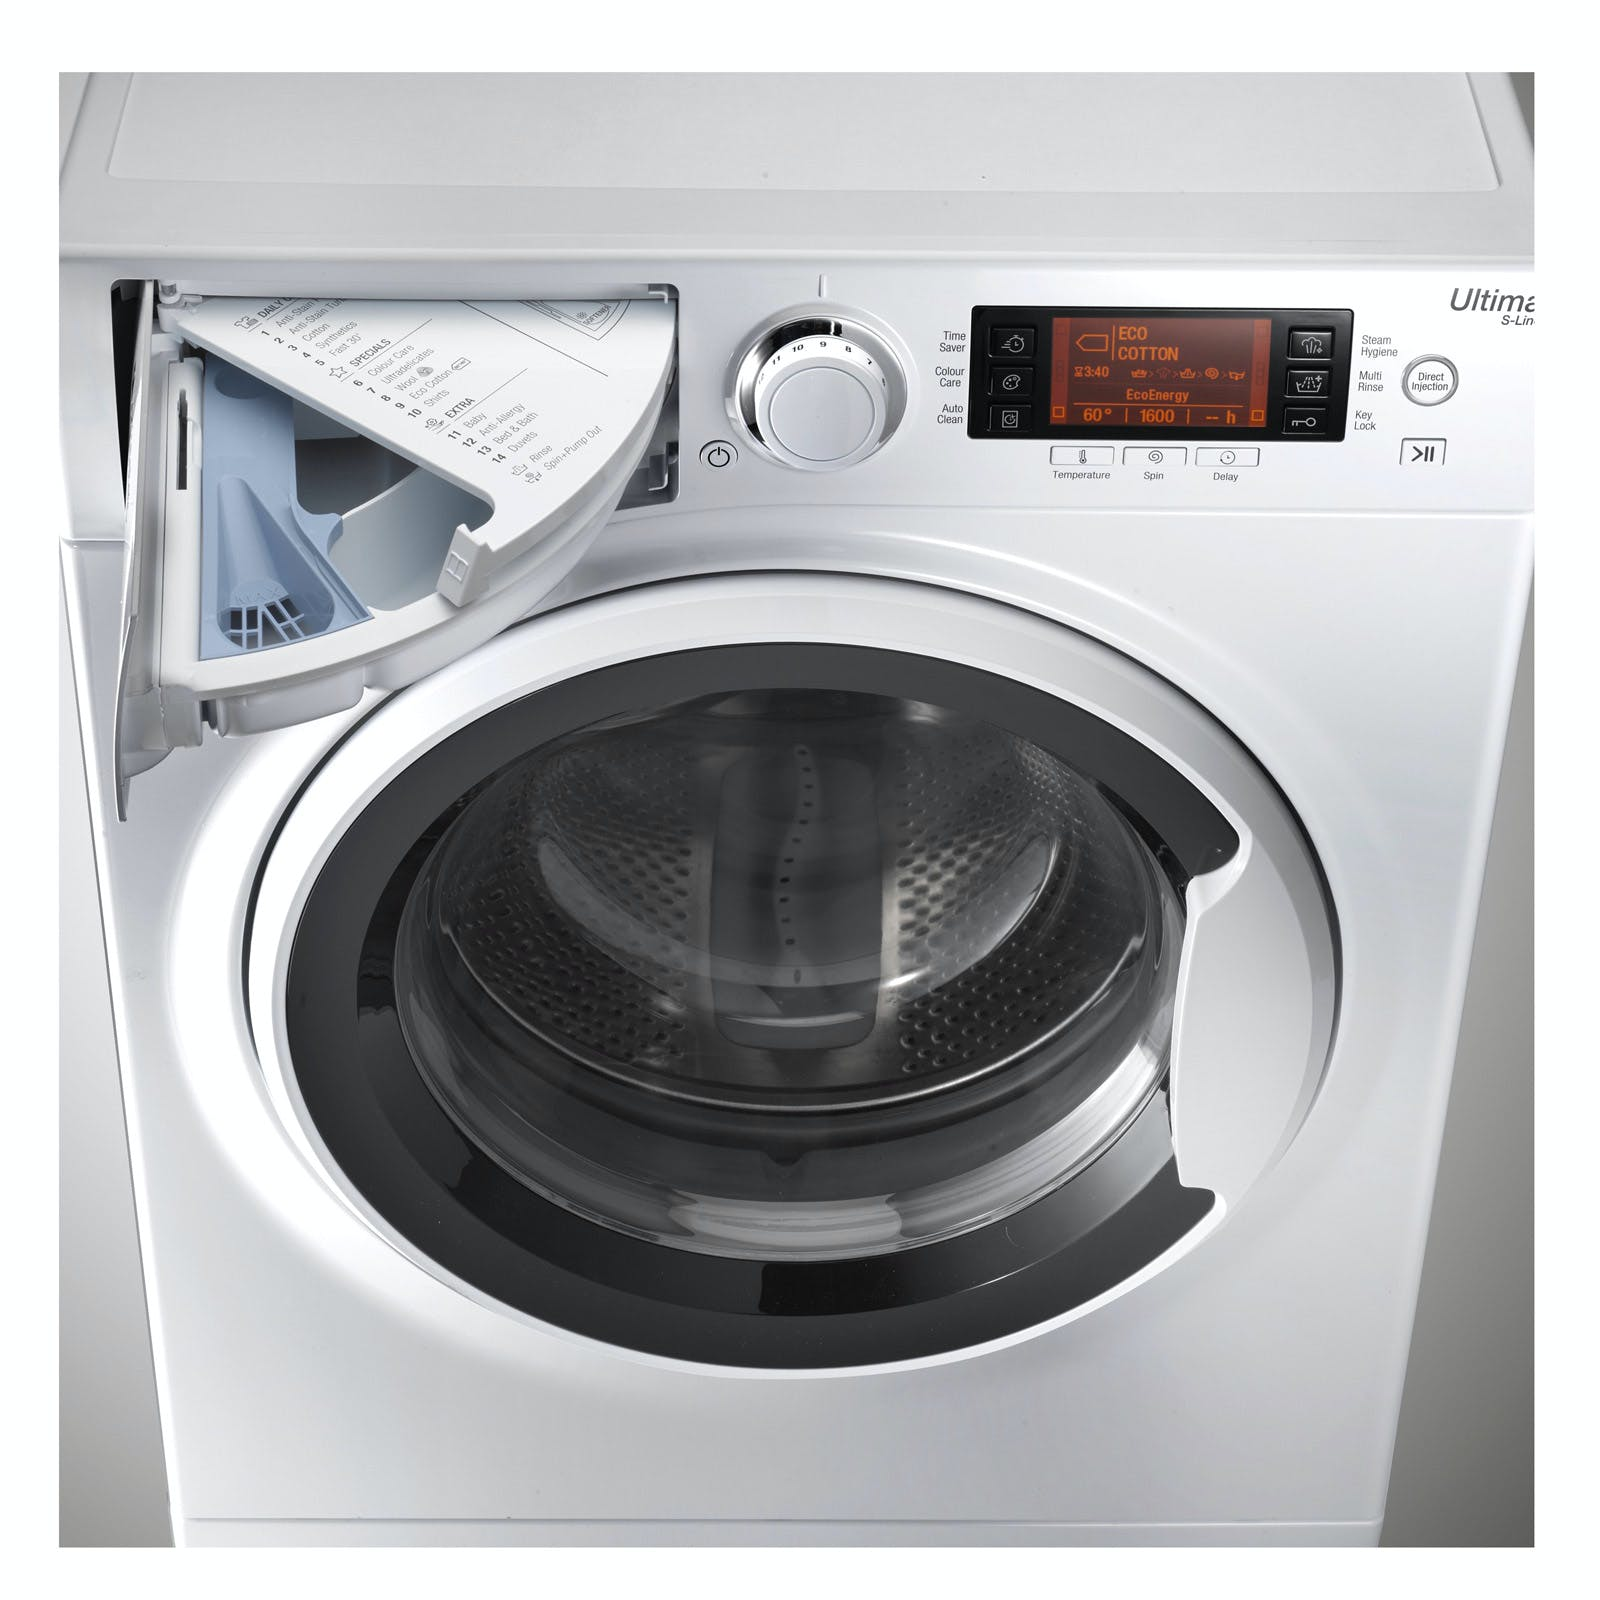 hotpoint rpd9467j ultima s washing machine in white. Black Bedroom Furniture Sets. Home Design Ideas